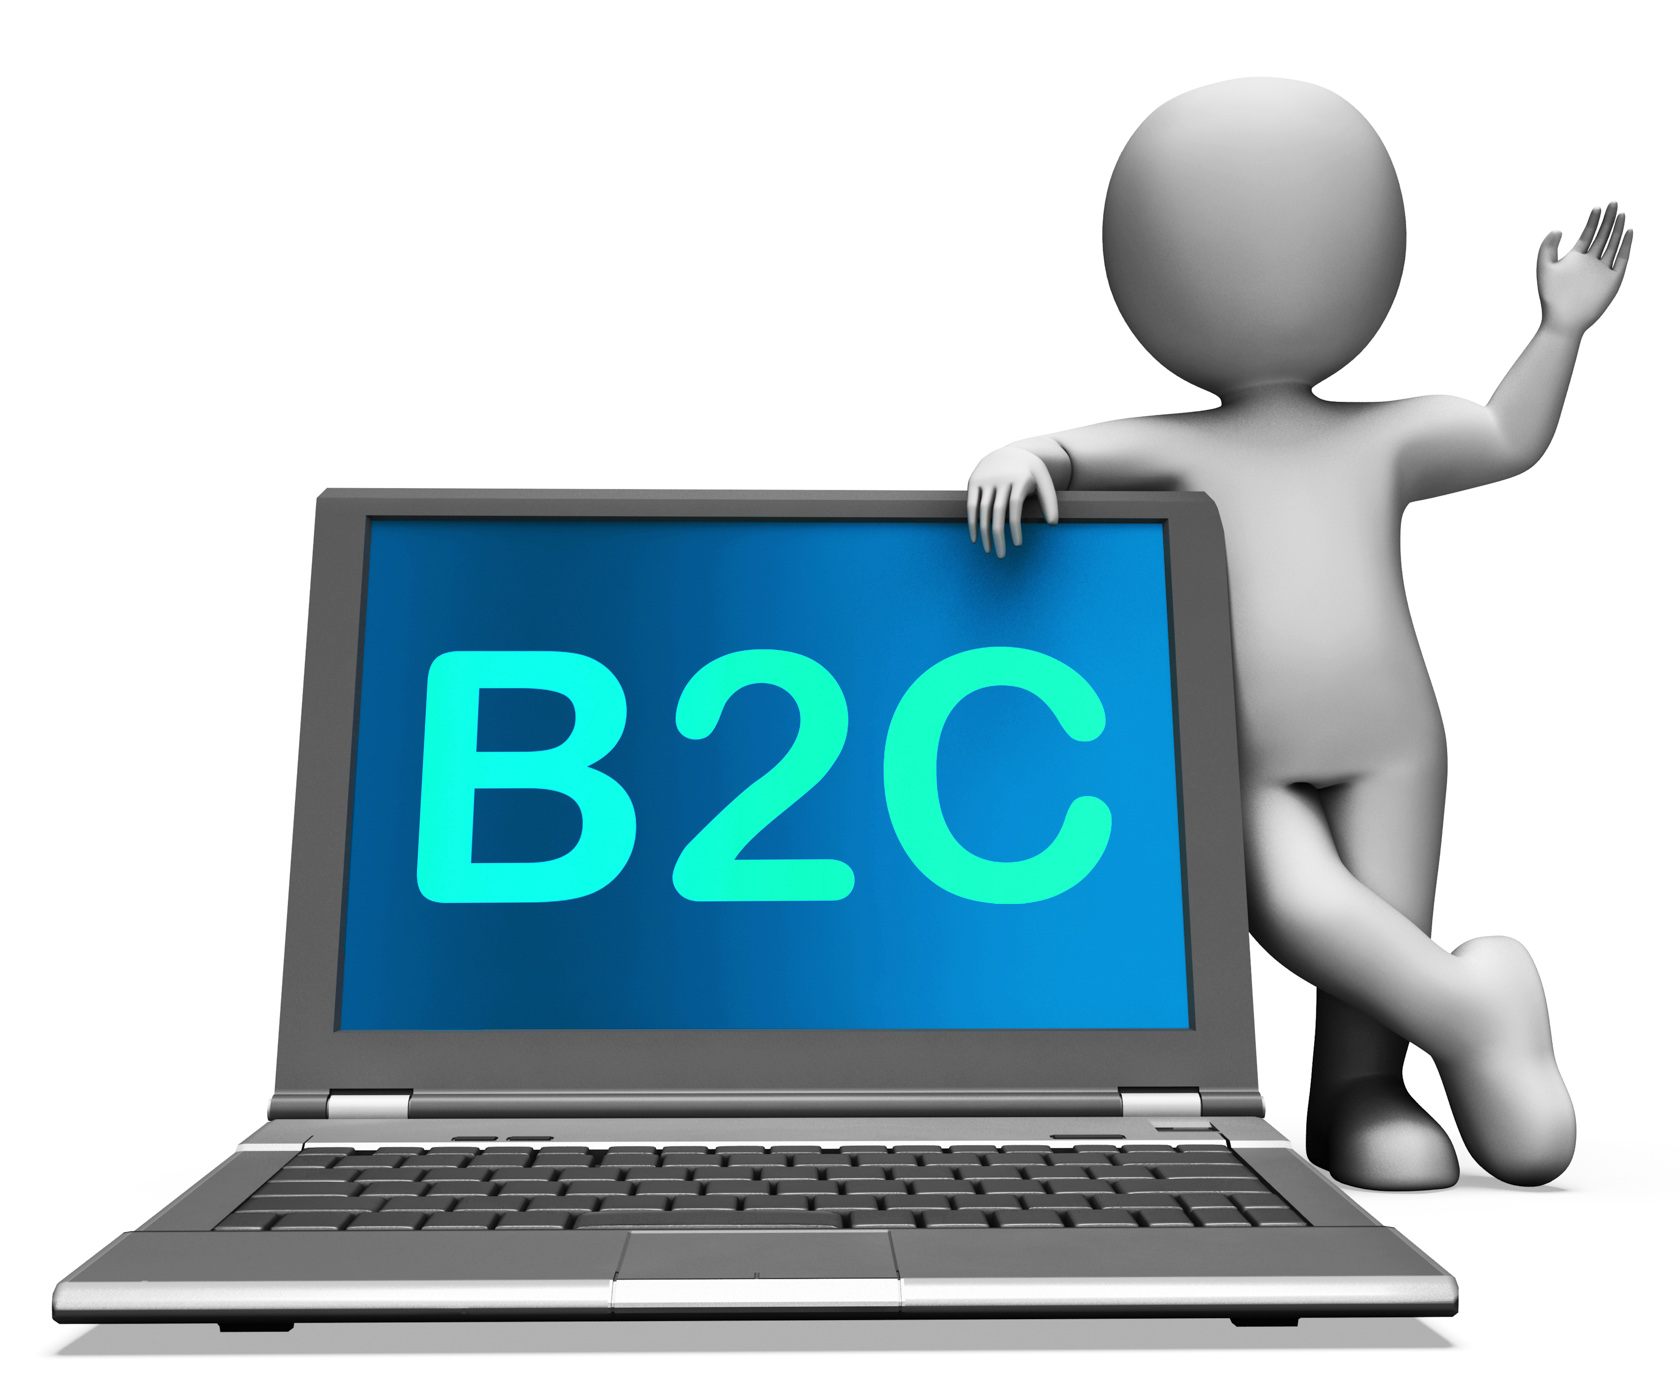 B2c laptop and character shows business to customer or consumer photo